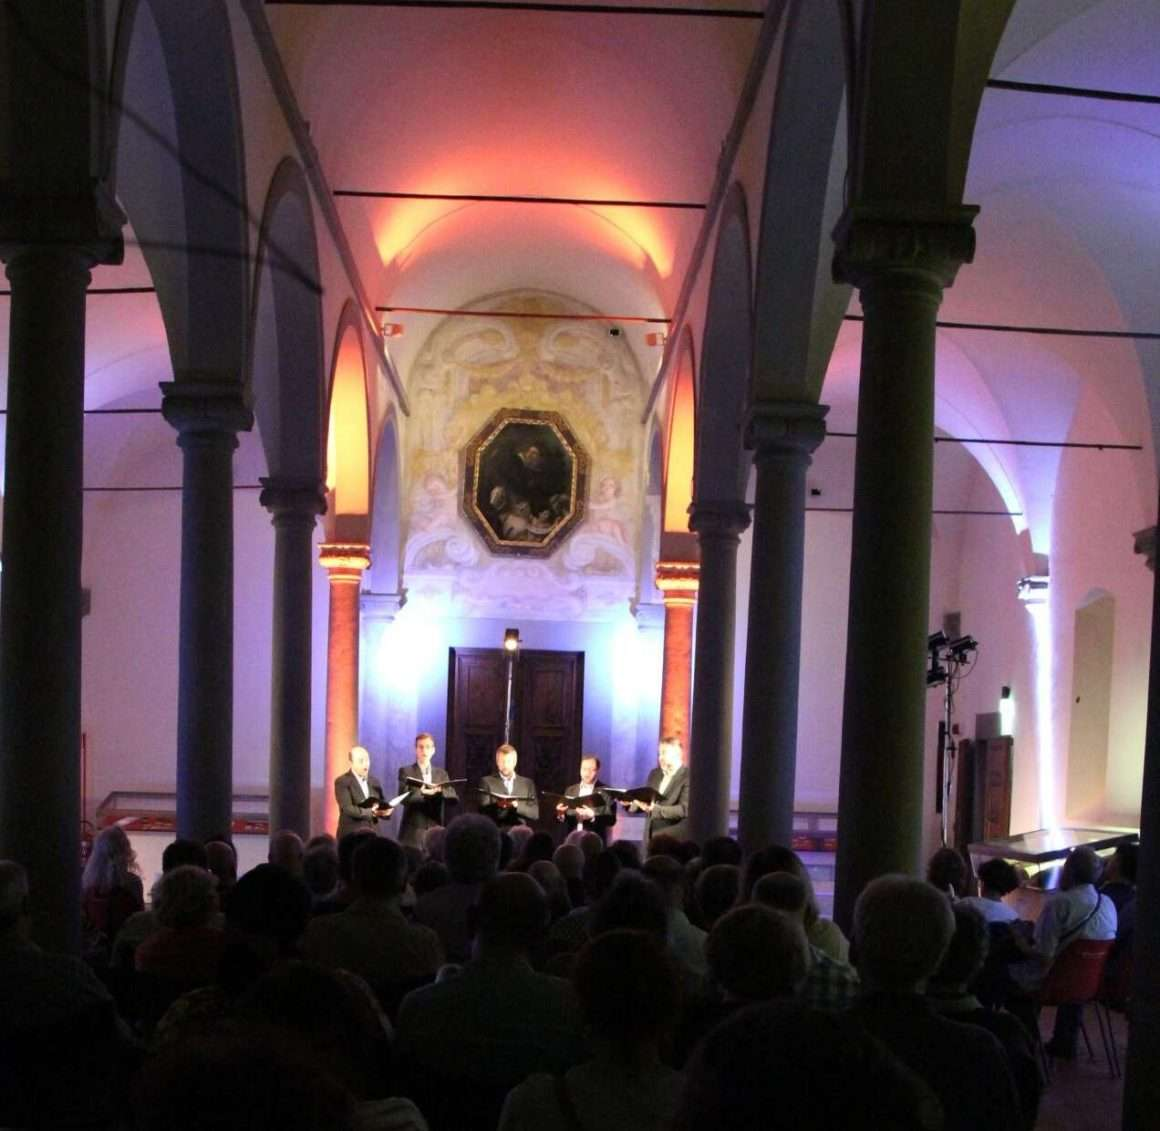 The Ensemble Cinquecento at the FloReMus concert of September 4, 2018